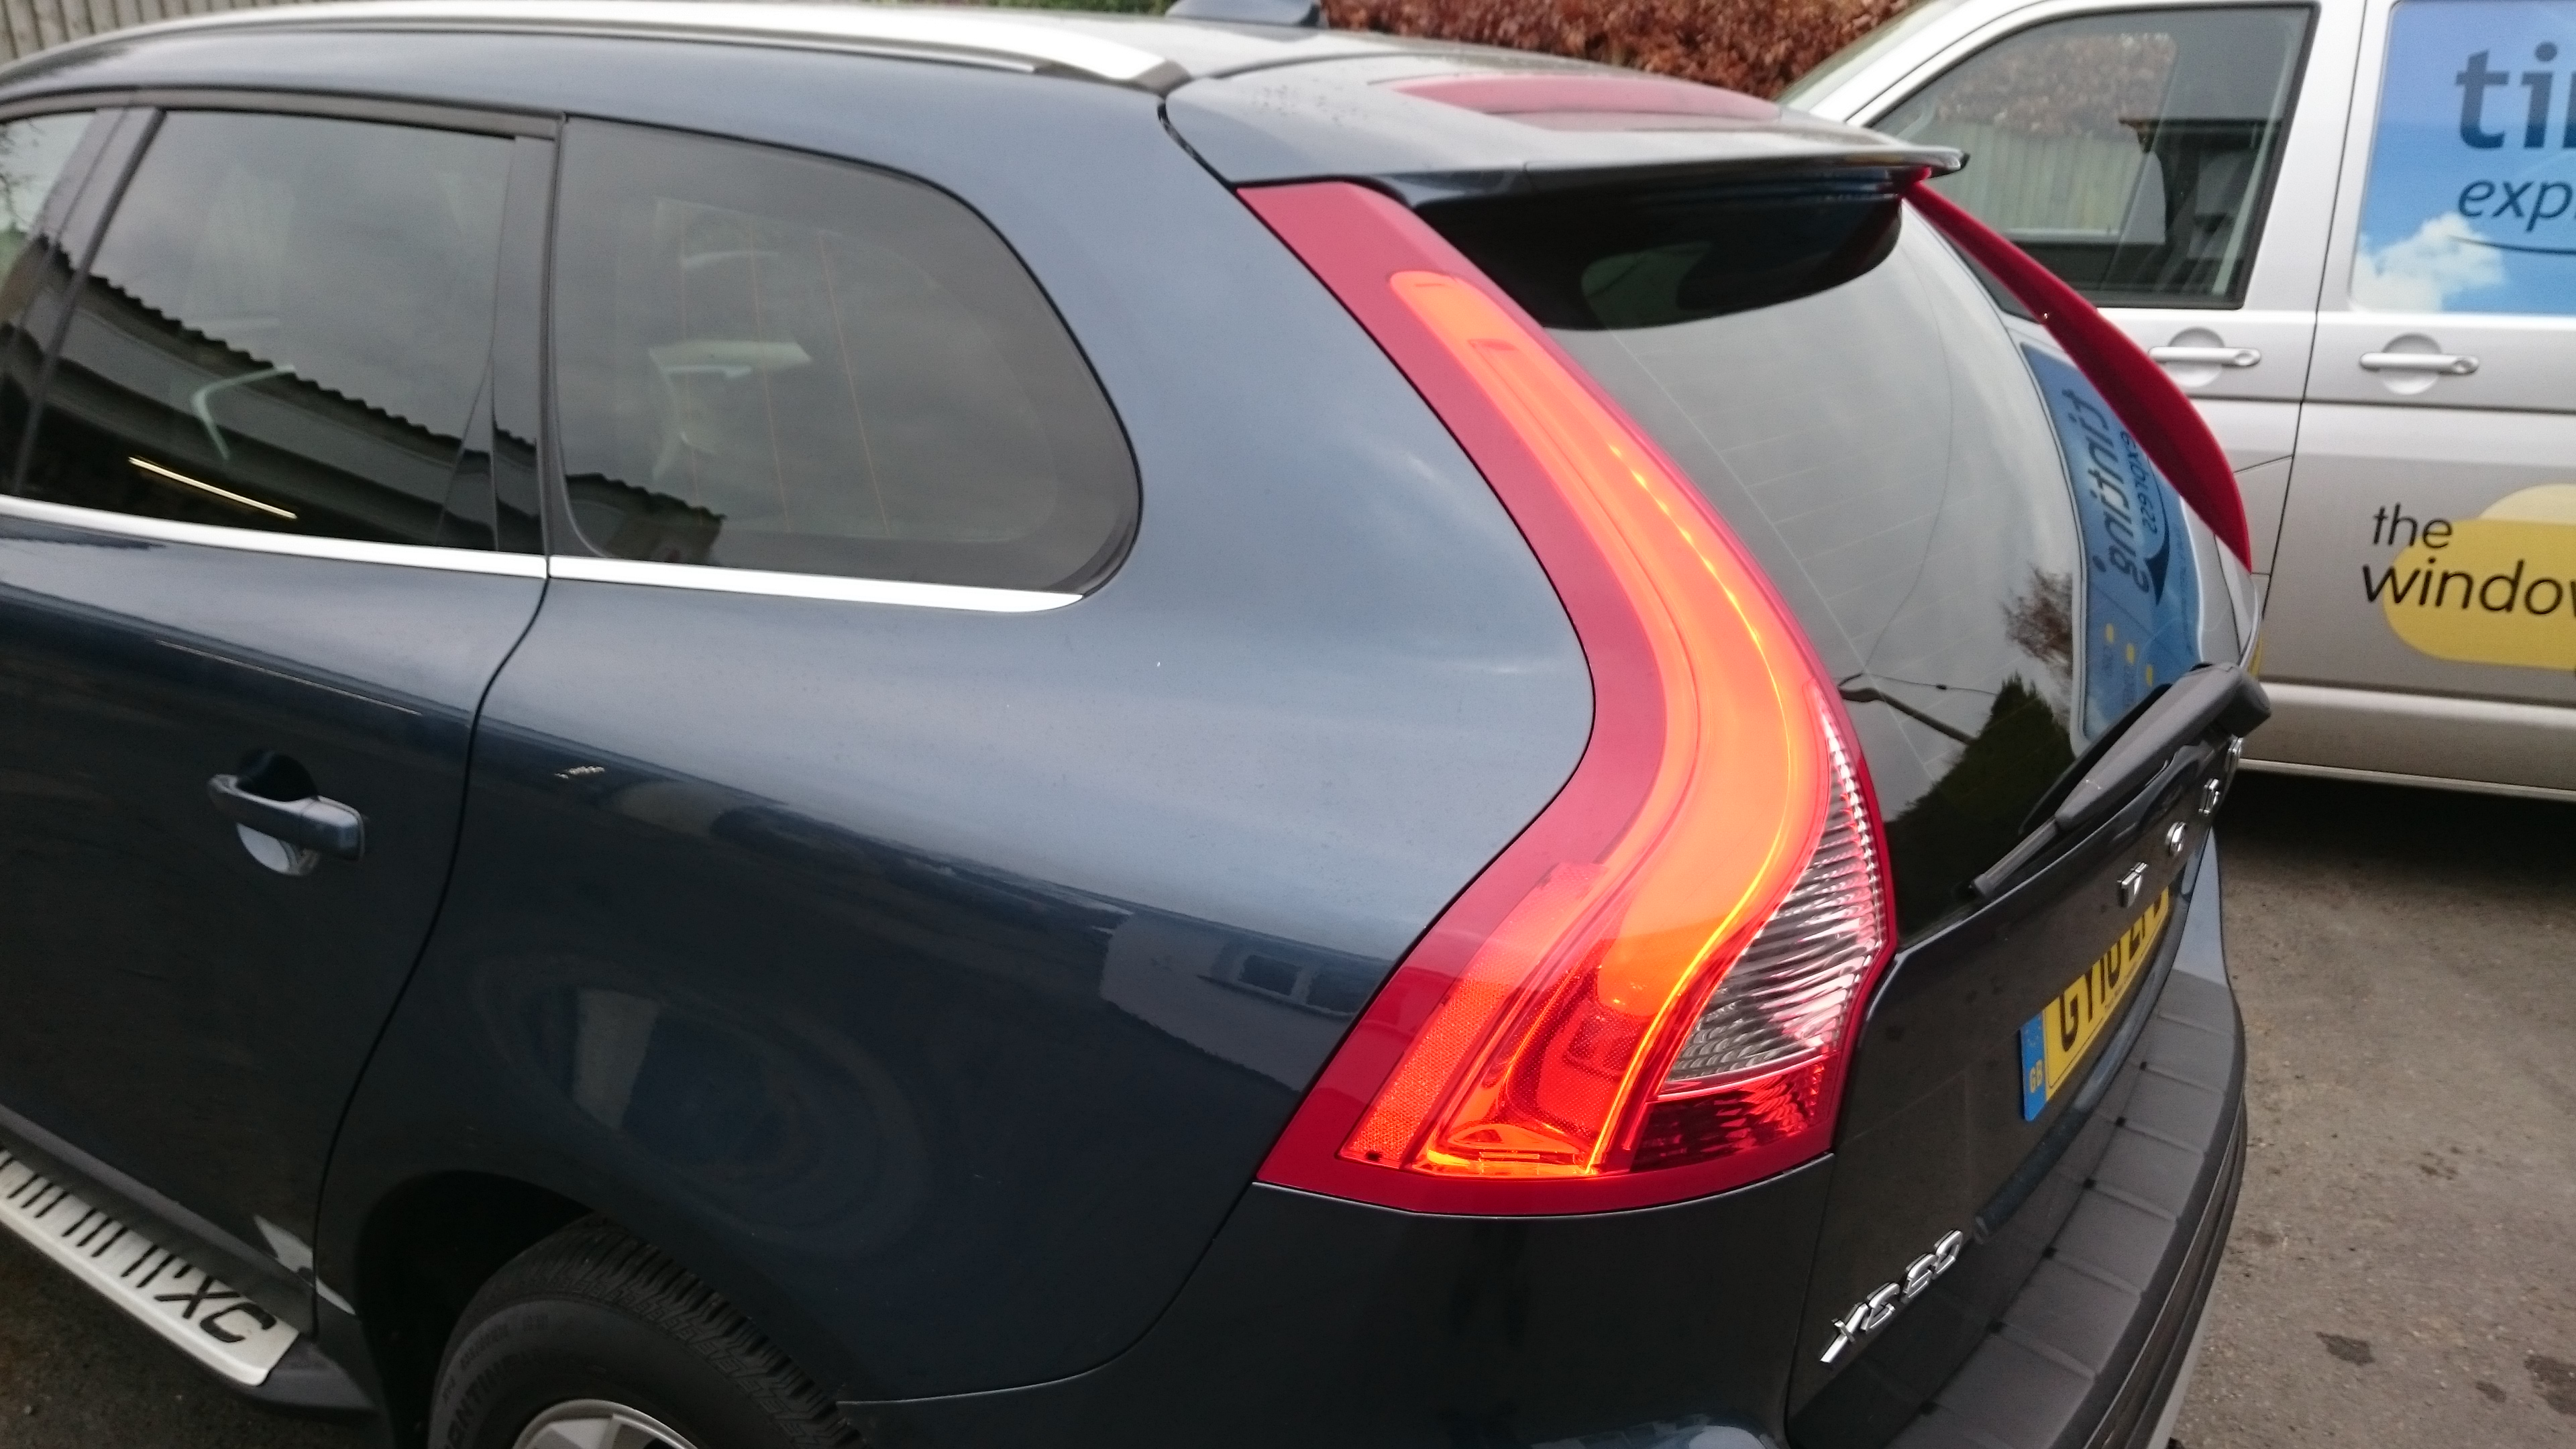 Volvo XC60 HP20 auto window tinting Tinting Express Ltd Barnstaple